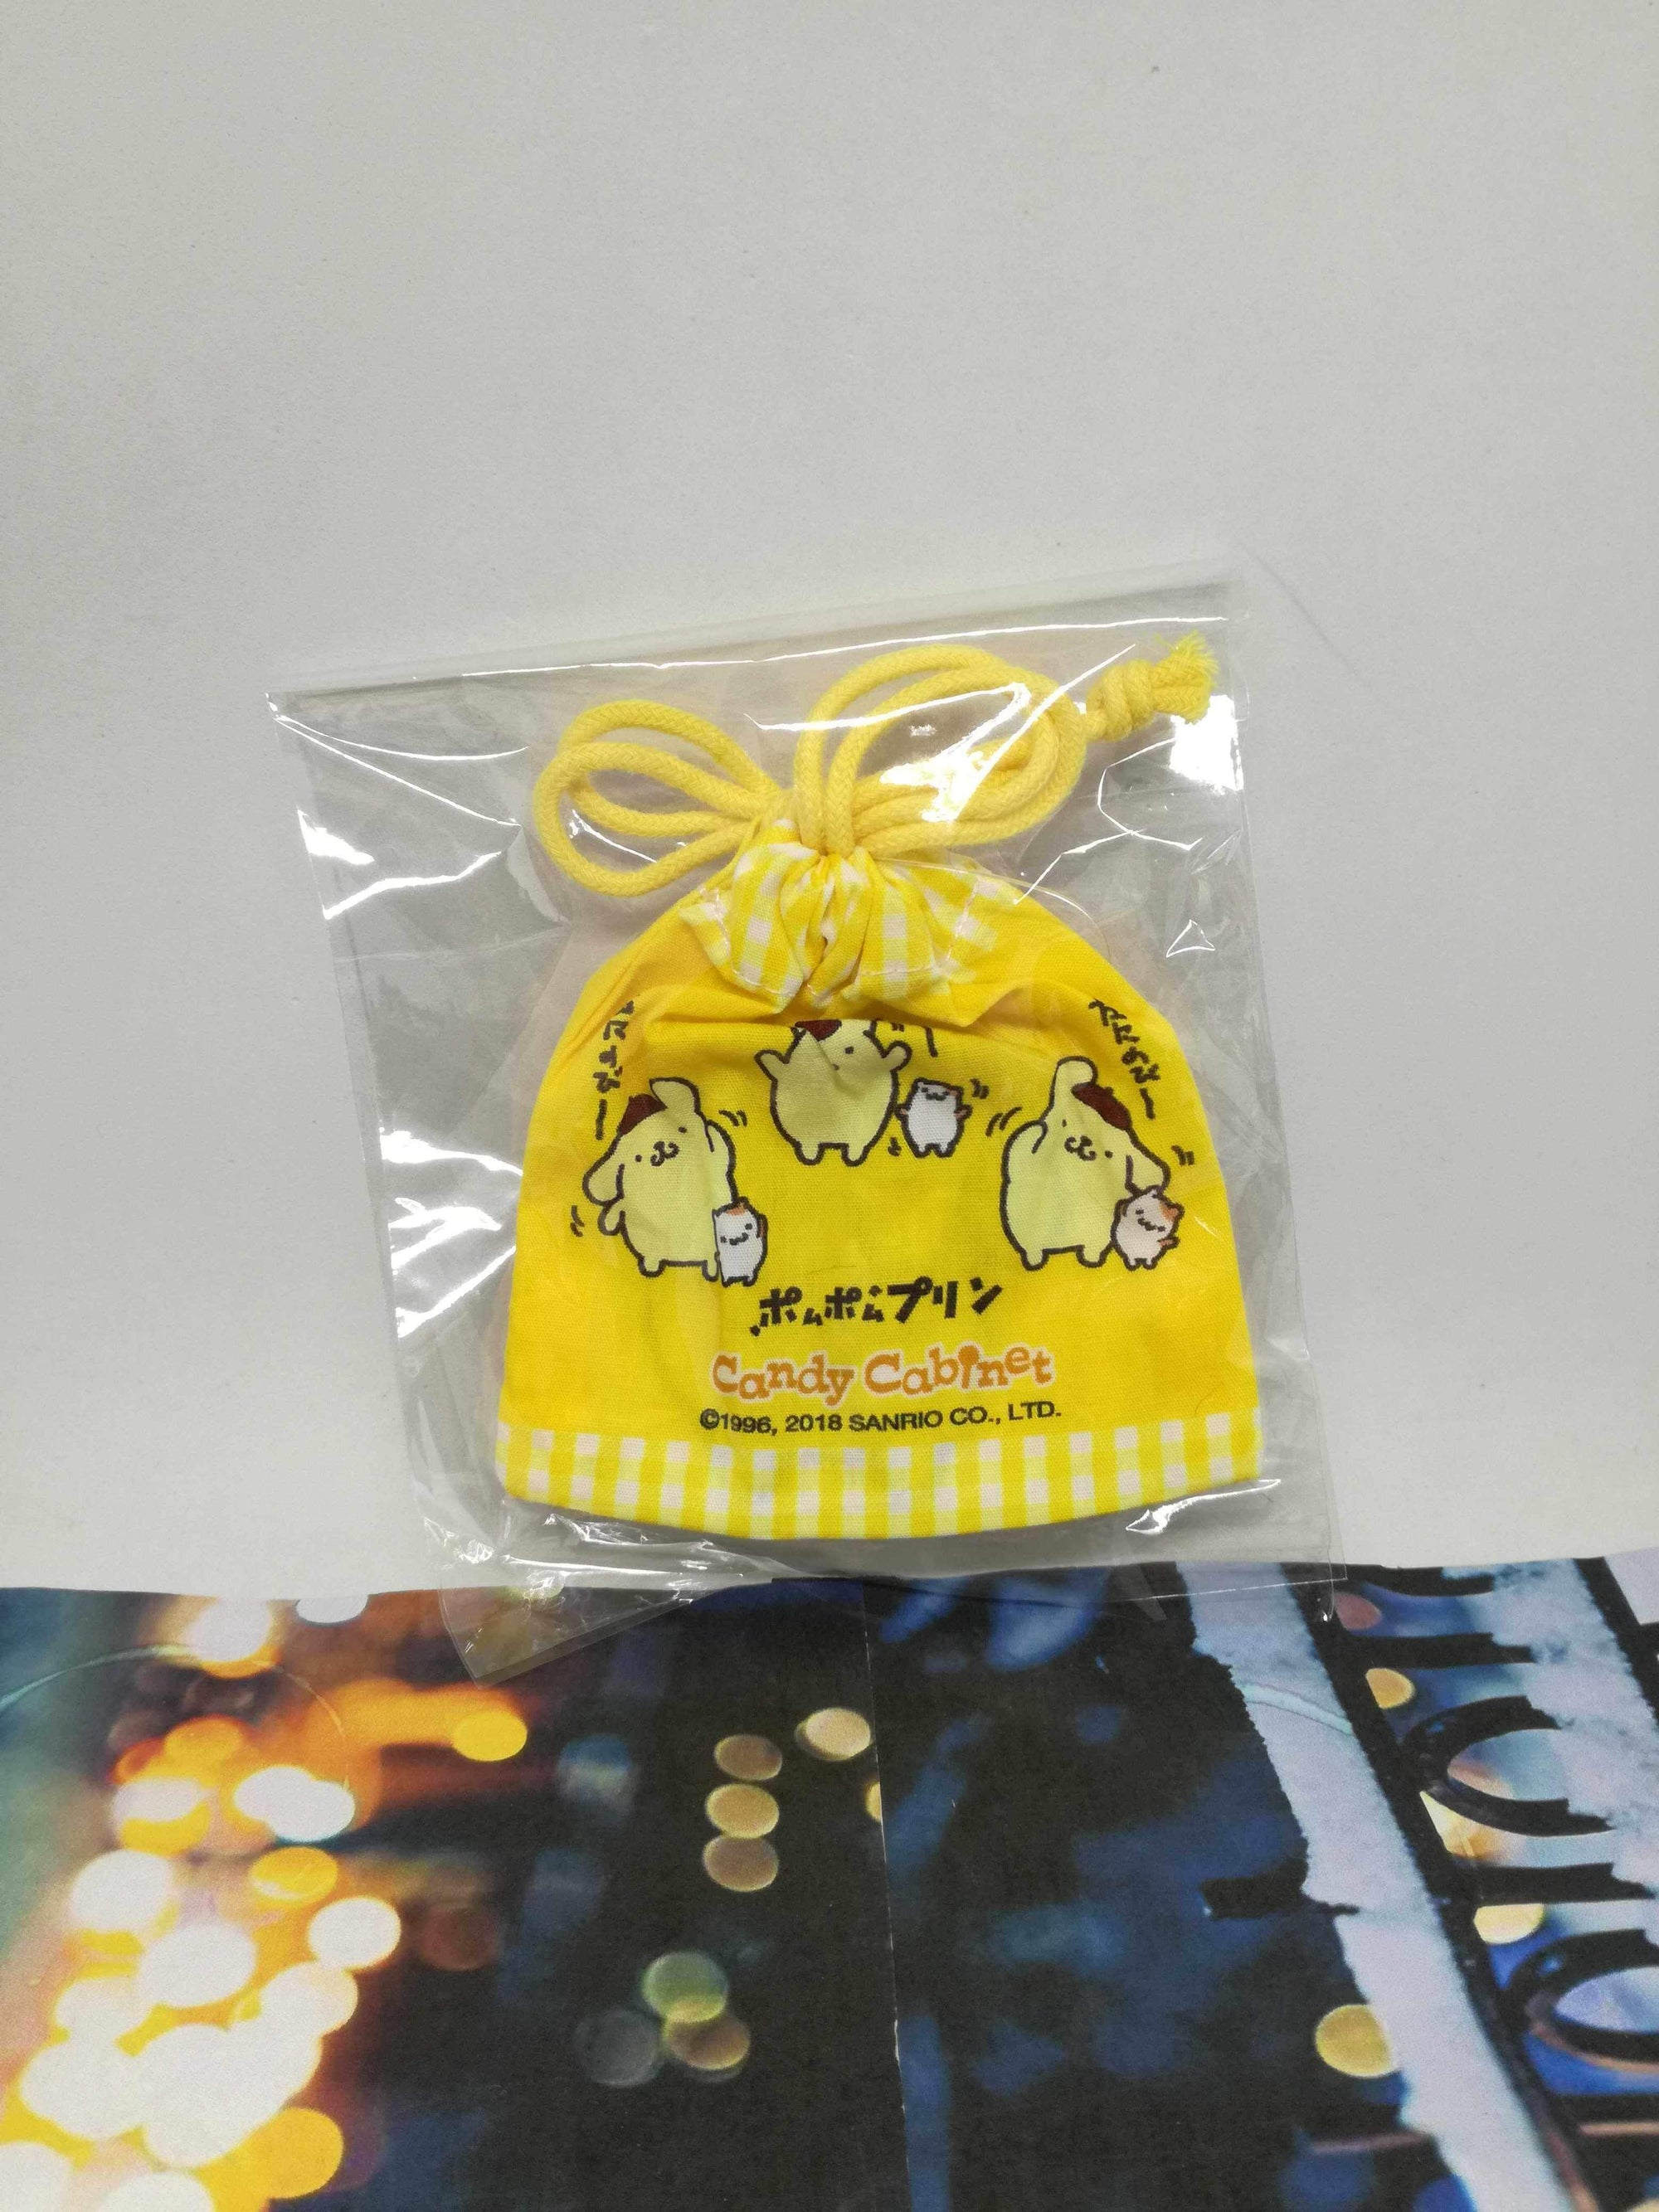 Pompompurin Candy Cabinet Pouch